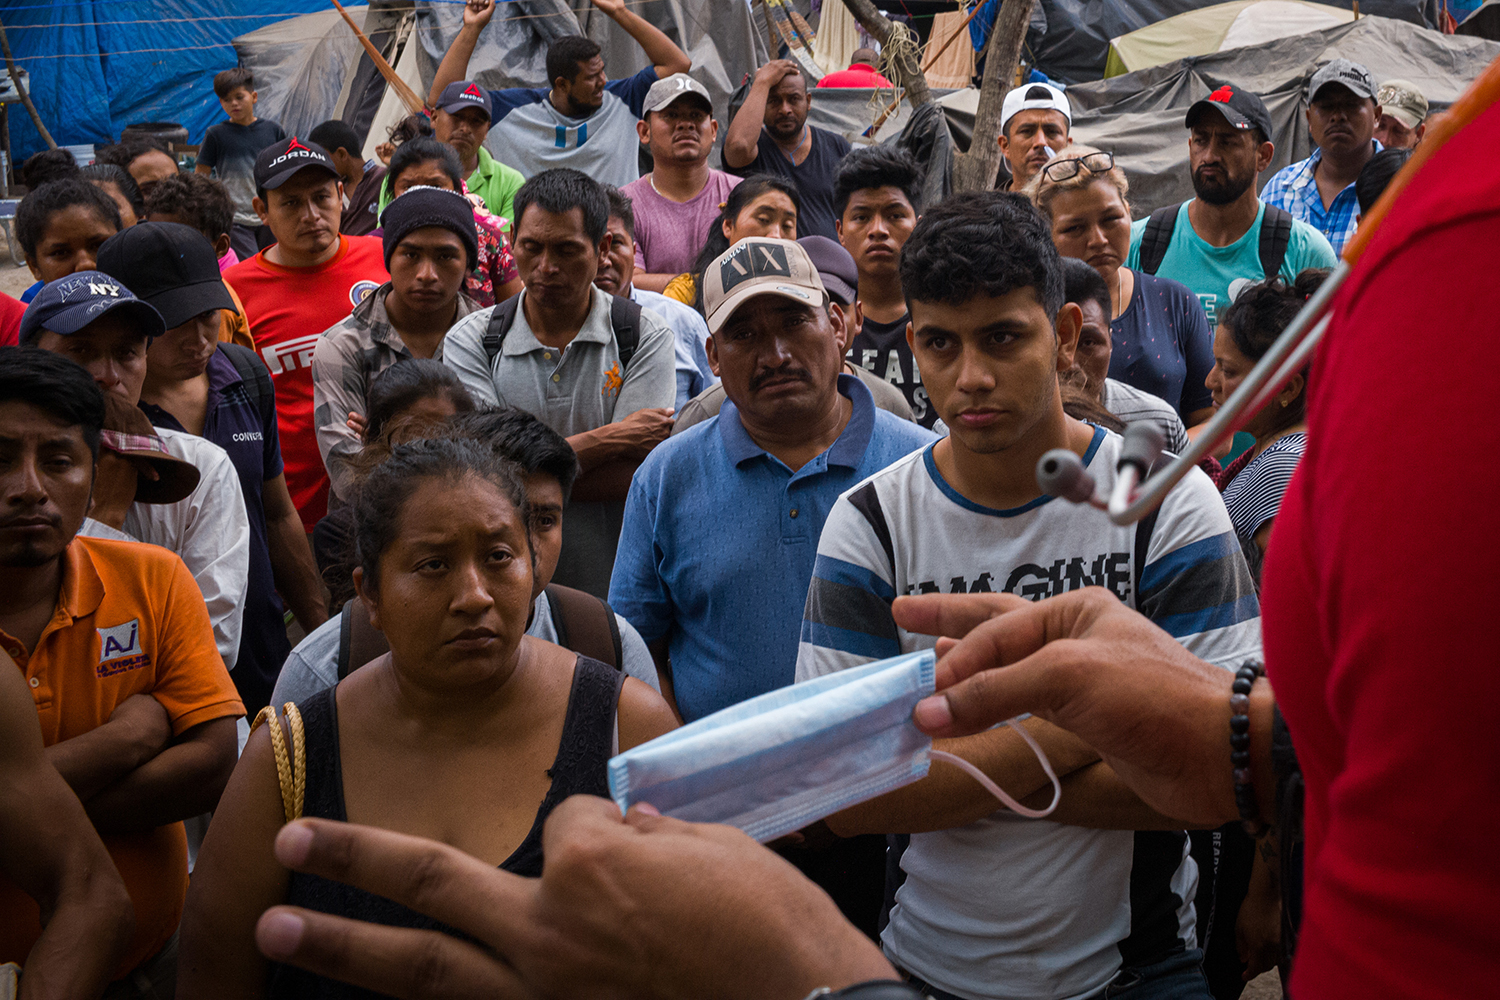 A Desperate Scramble to Prevent the Pandemic at a U.S.-Mexico Border Camp